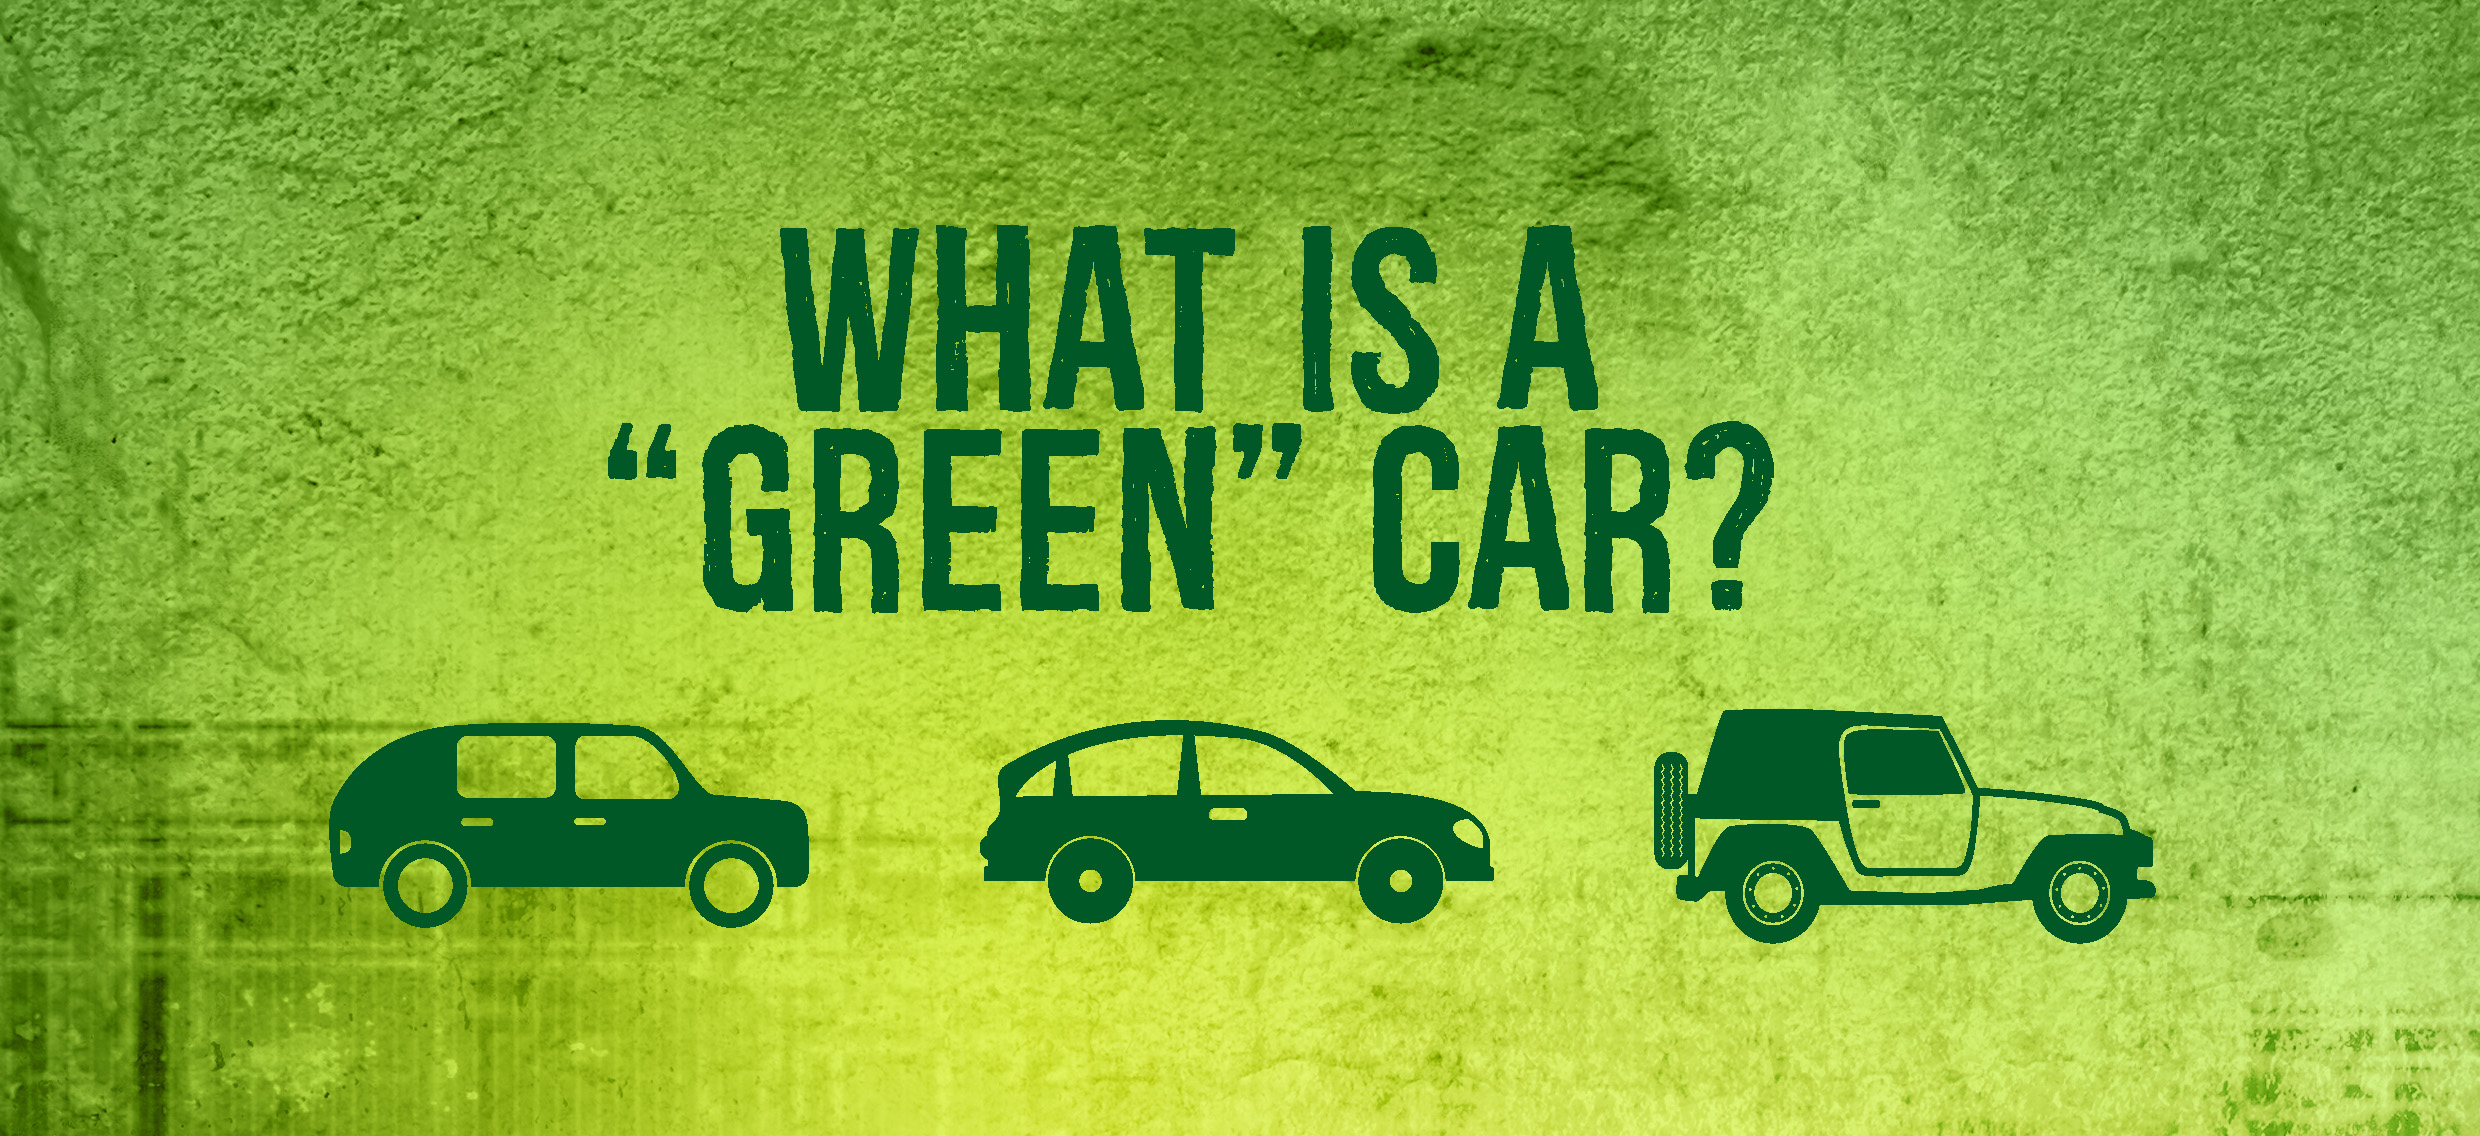 Green Car or Fuel Efficient Car?